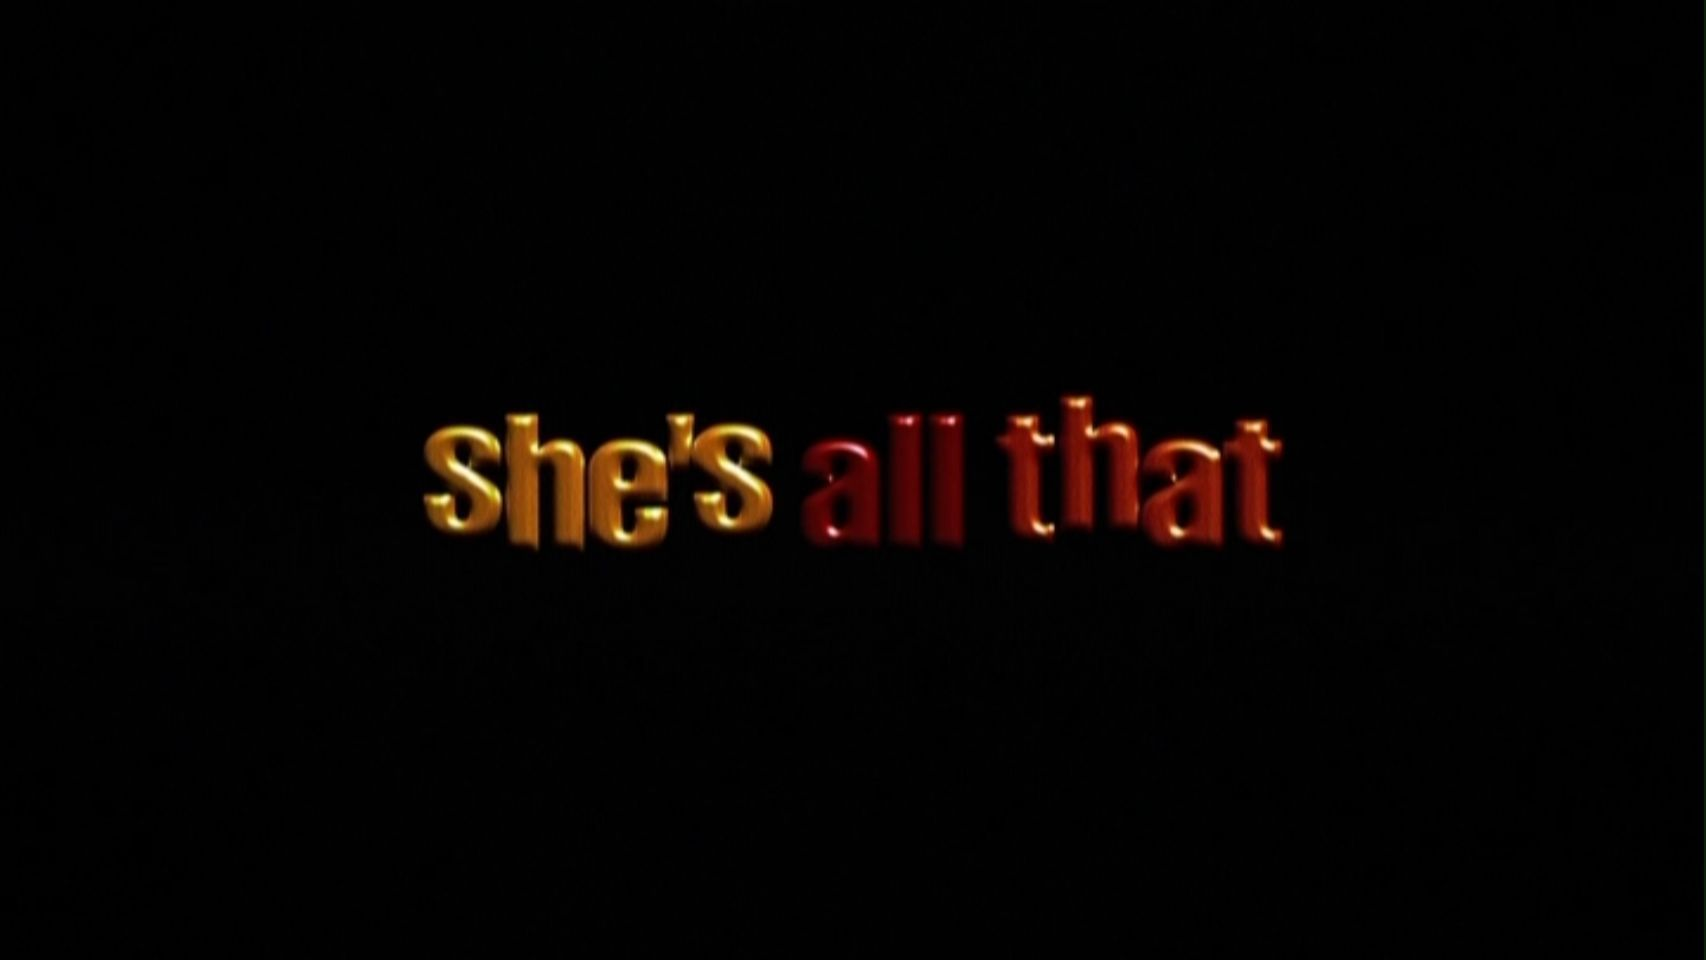 She's All That [1999] - She's All That Image (22685904 ...